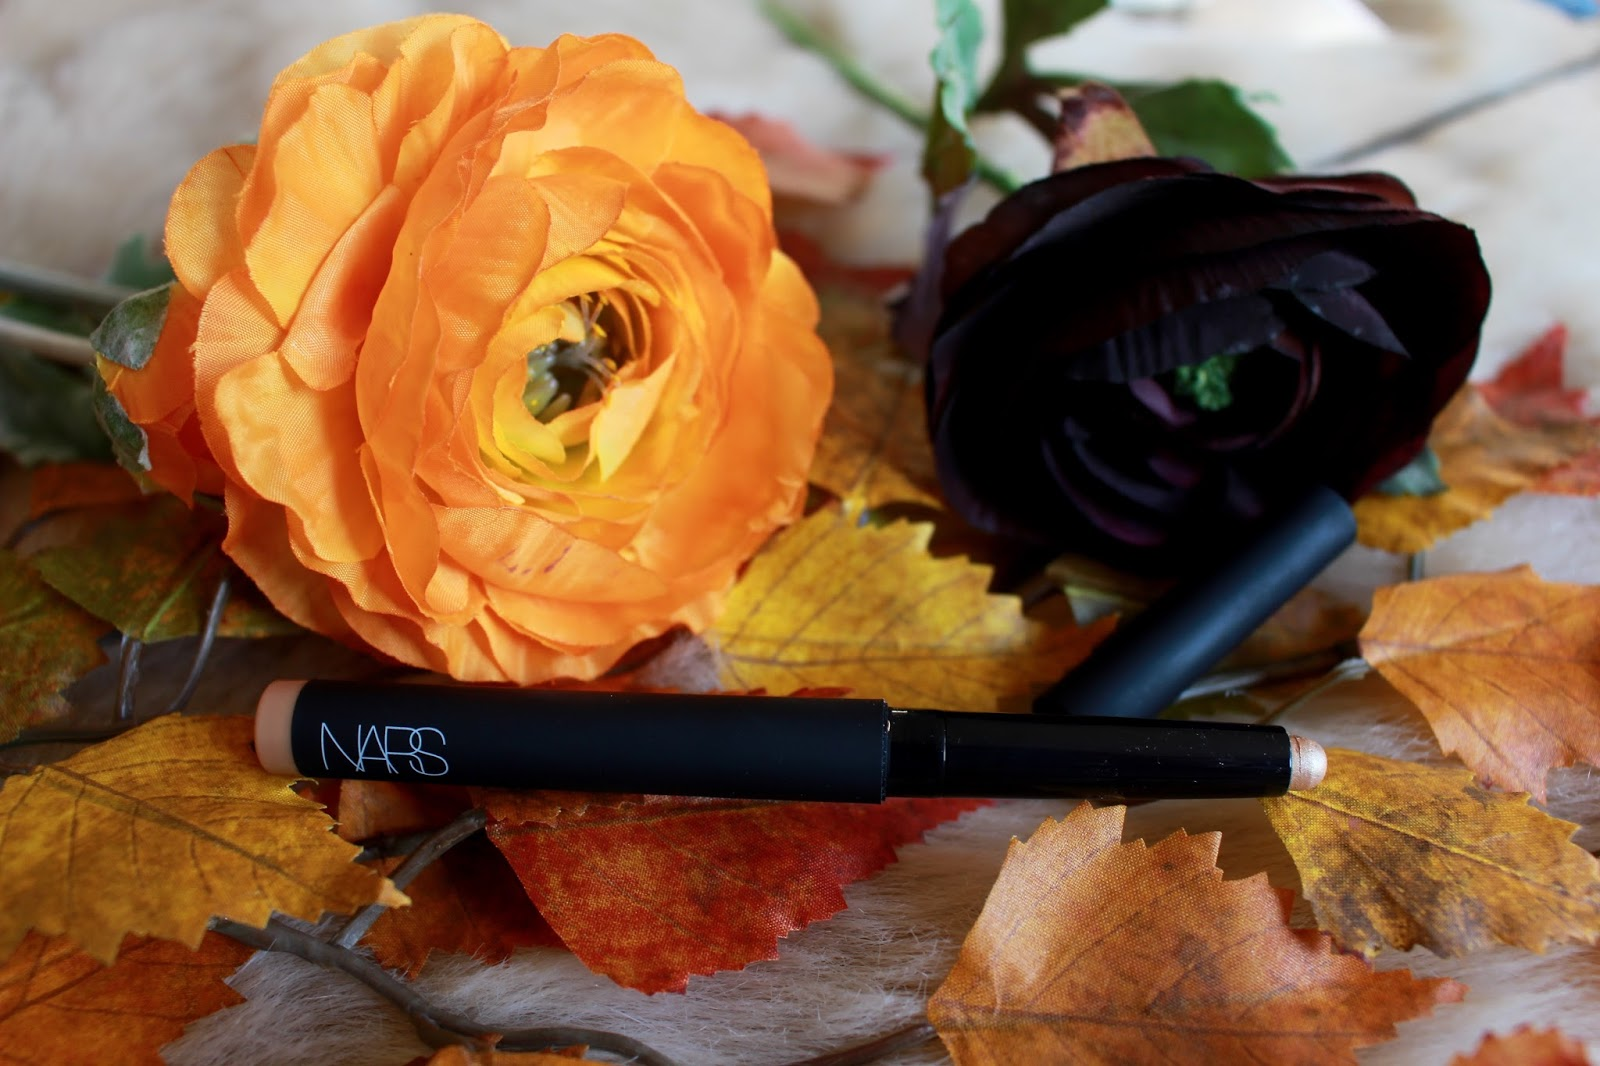 Nars Eyeshadow Stick Hollywood